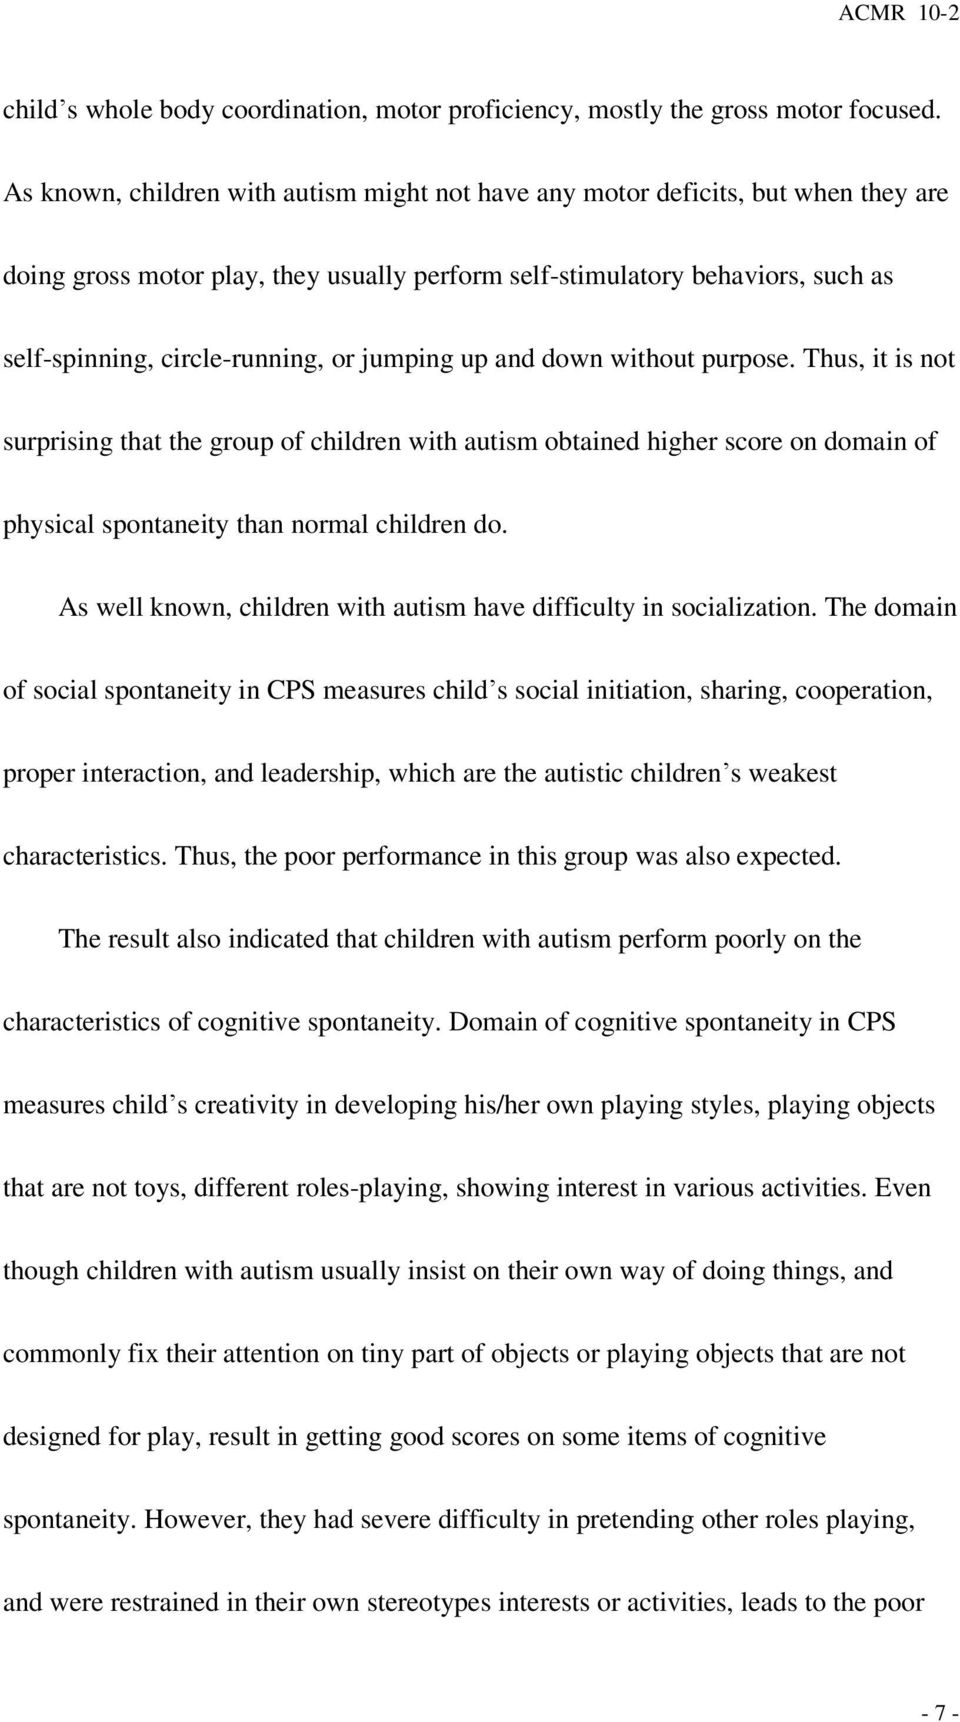 jumping up and down without purpose. Thus, it is not surprising that the group of children with autism obtained higher score on domain of physical spontaneity than normal children do.